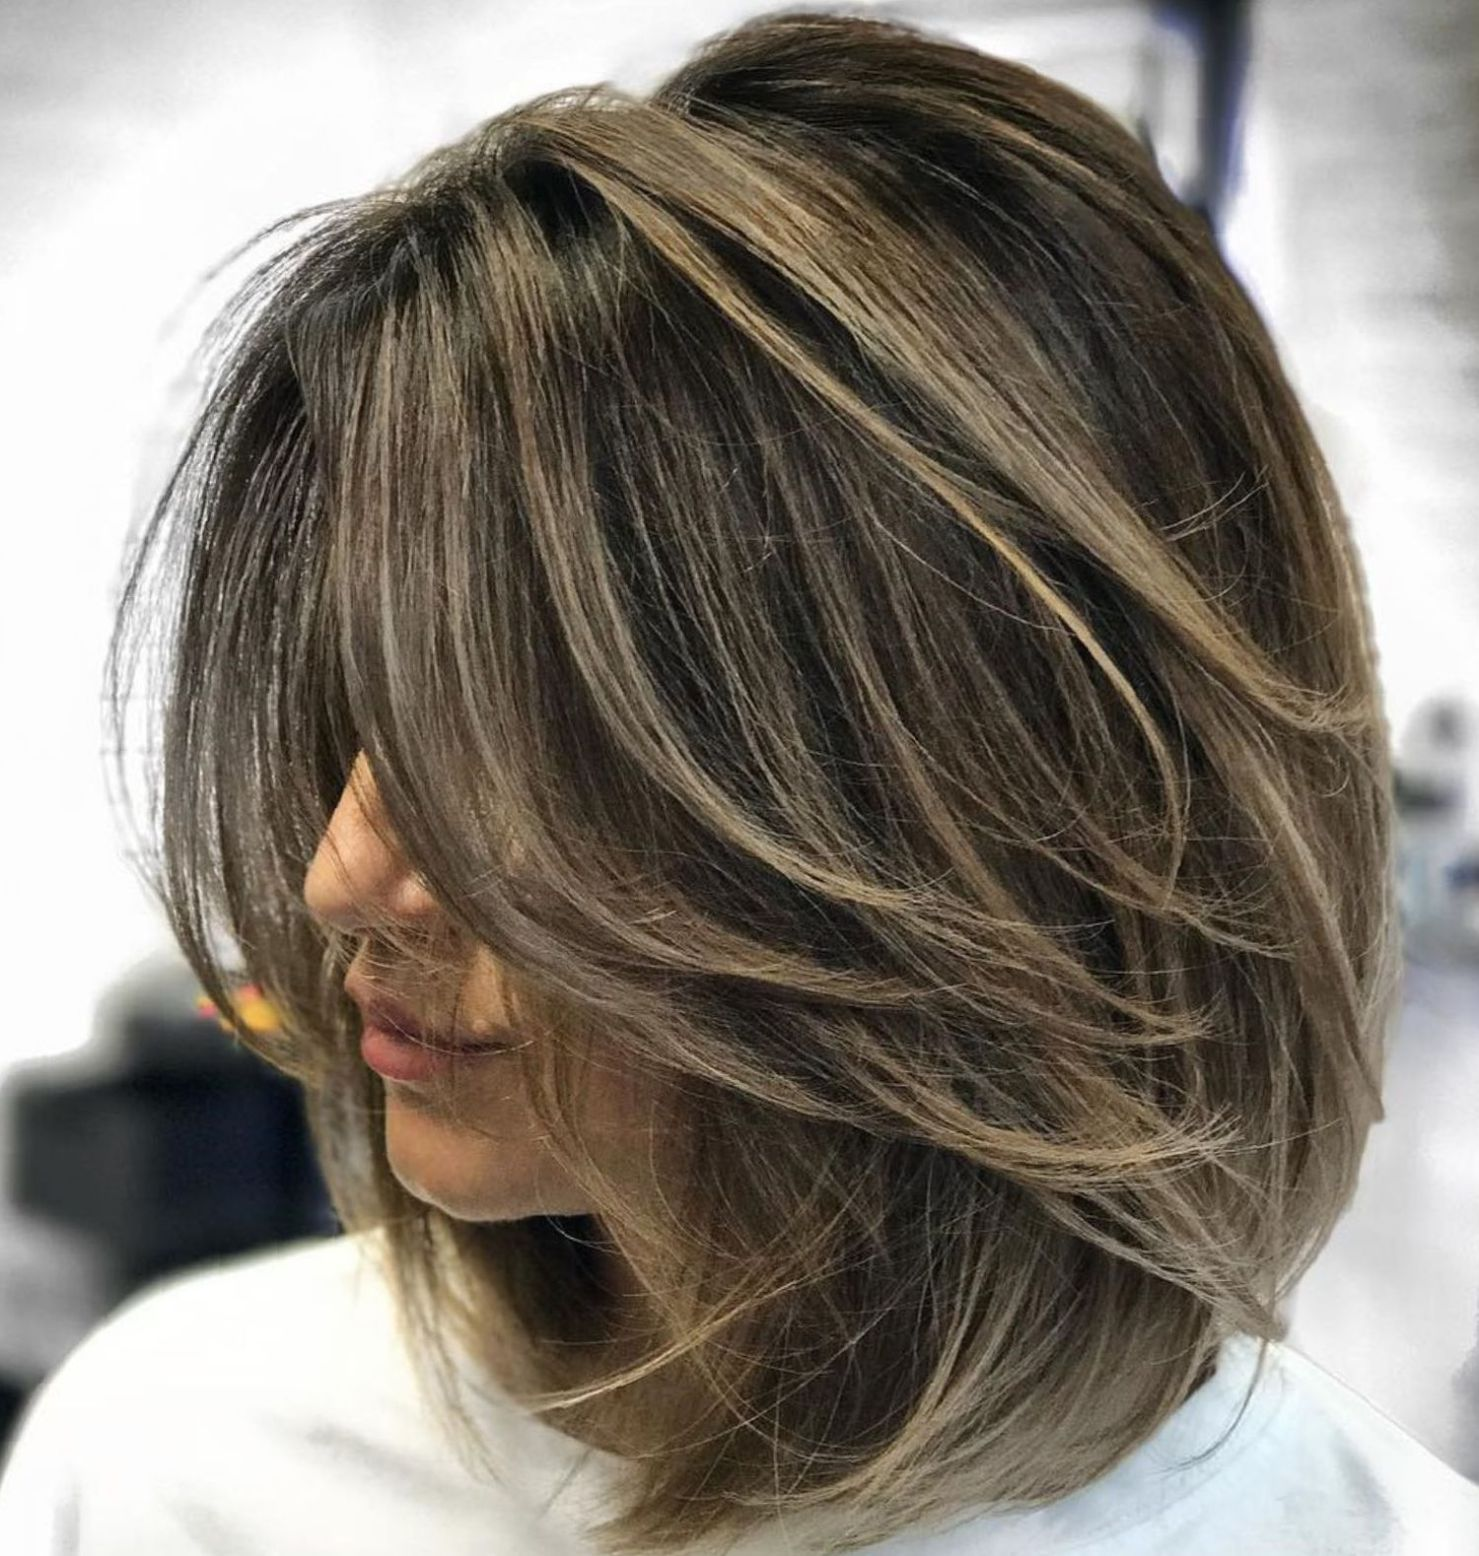 50 Best Hairstyles For Square Faces Rounding The Angles Haircut For Square Face Round Face Haircuts Square Face Hairstyles